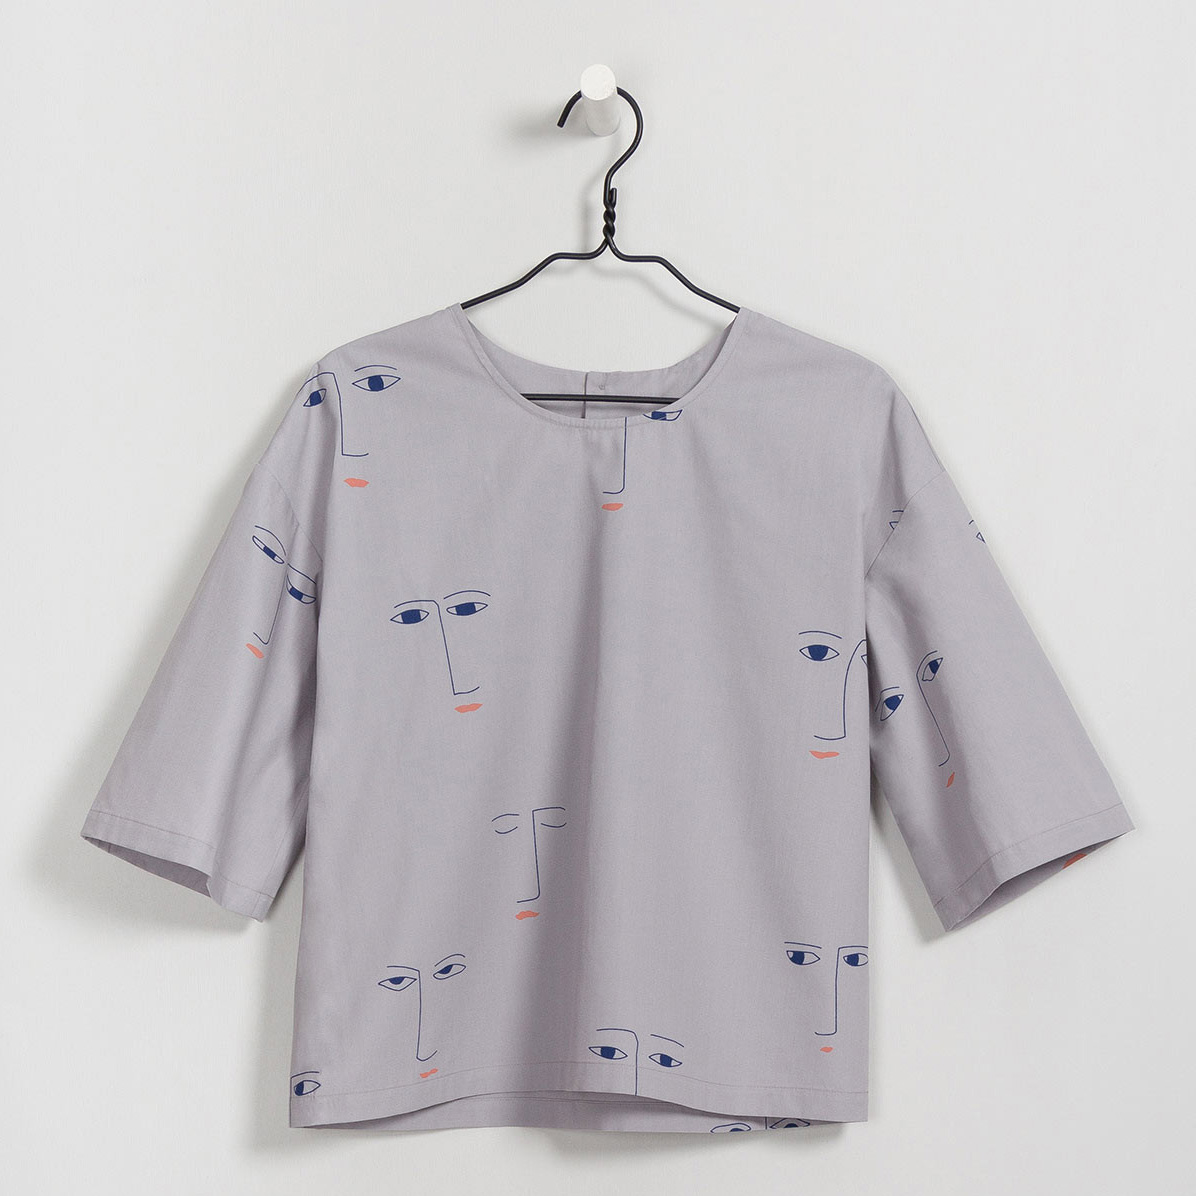 Artifact Top by Kowtow